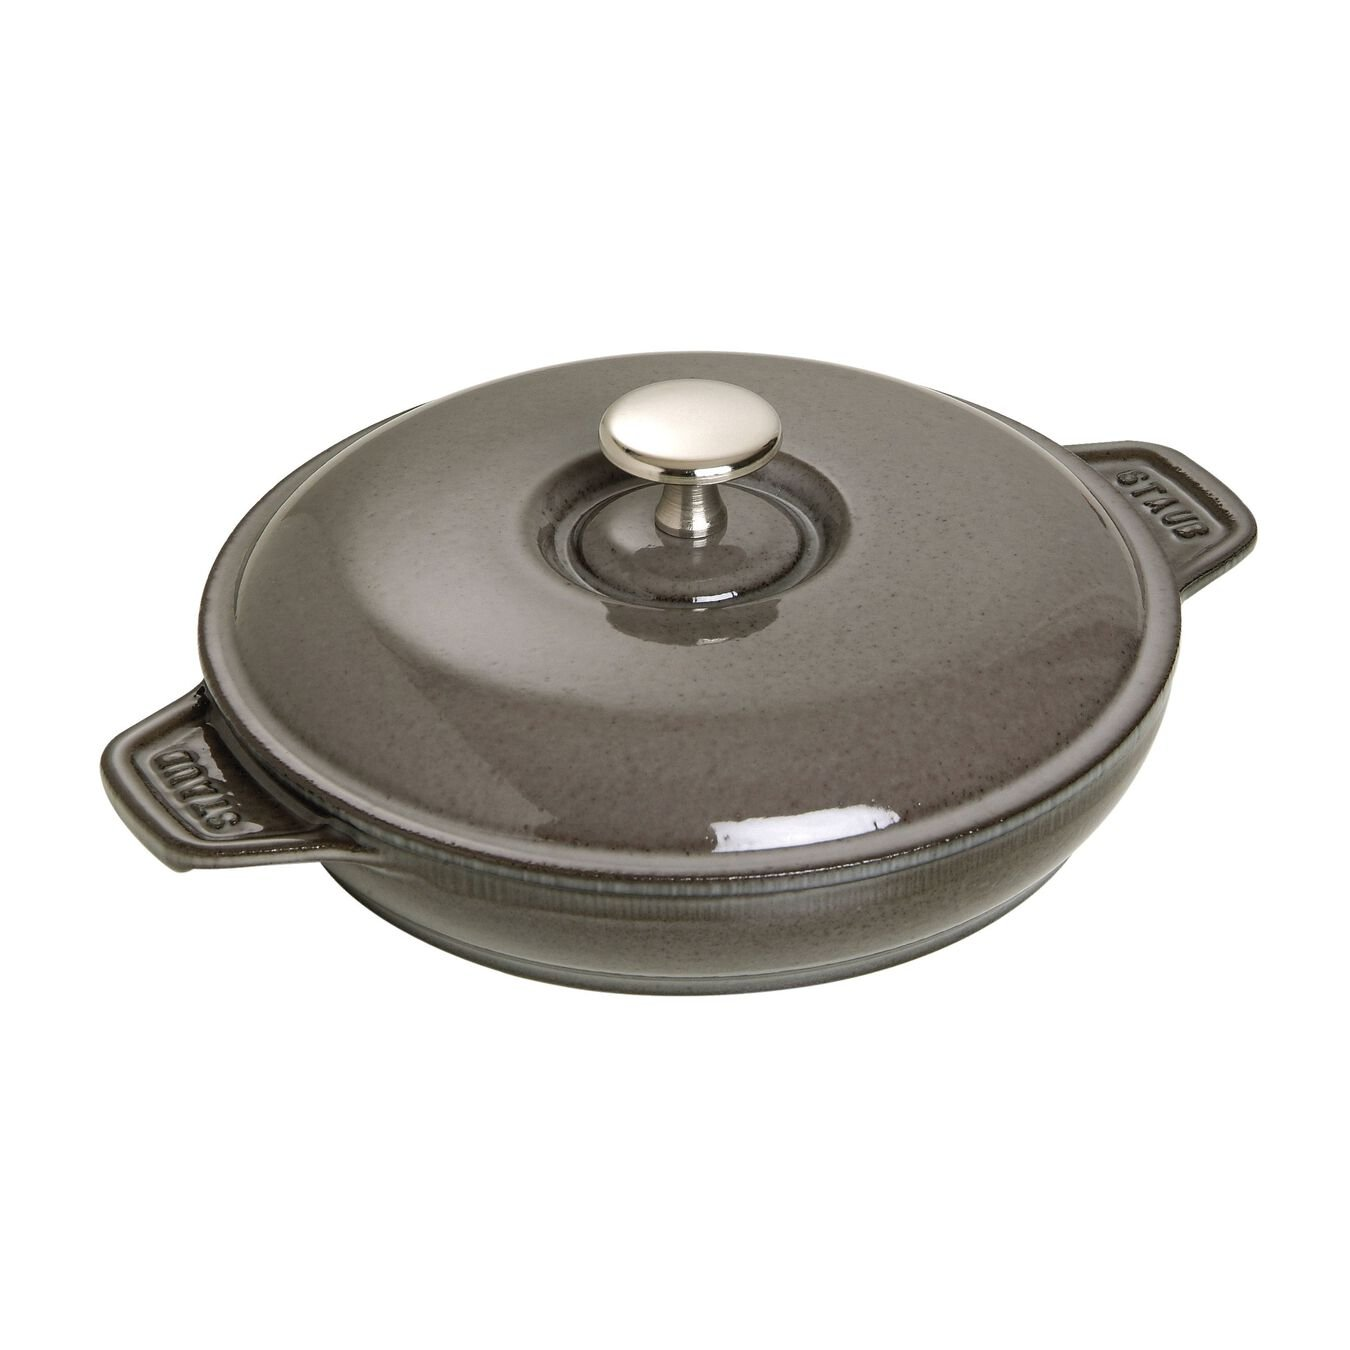 7.9-inch Round Covered Baking Dish - Graphite Grey,,large 2